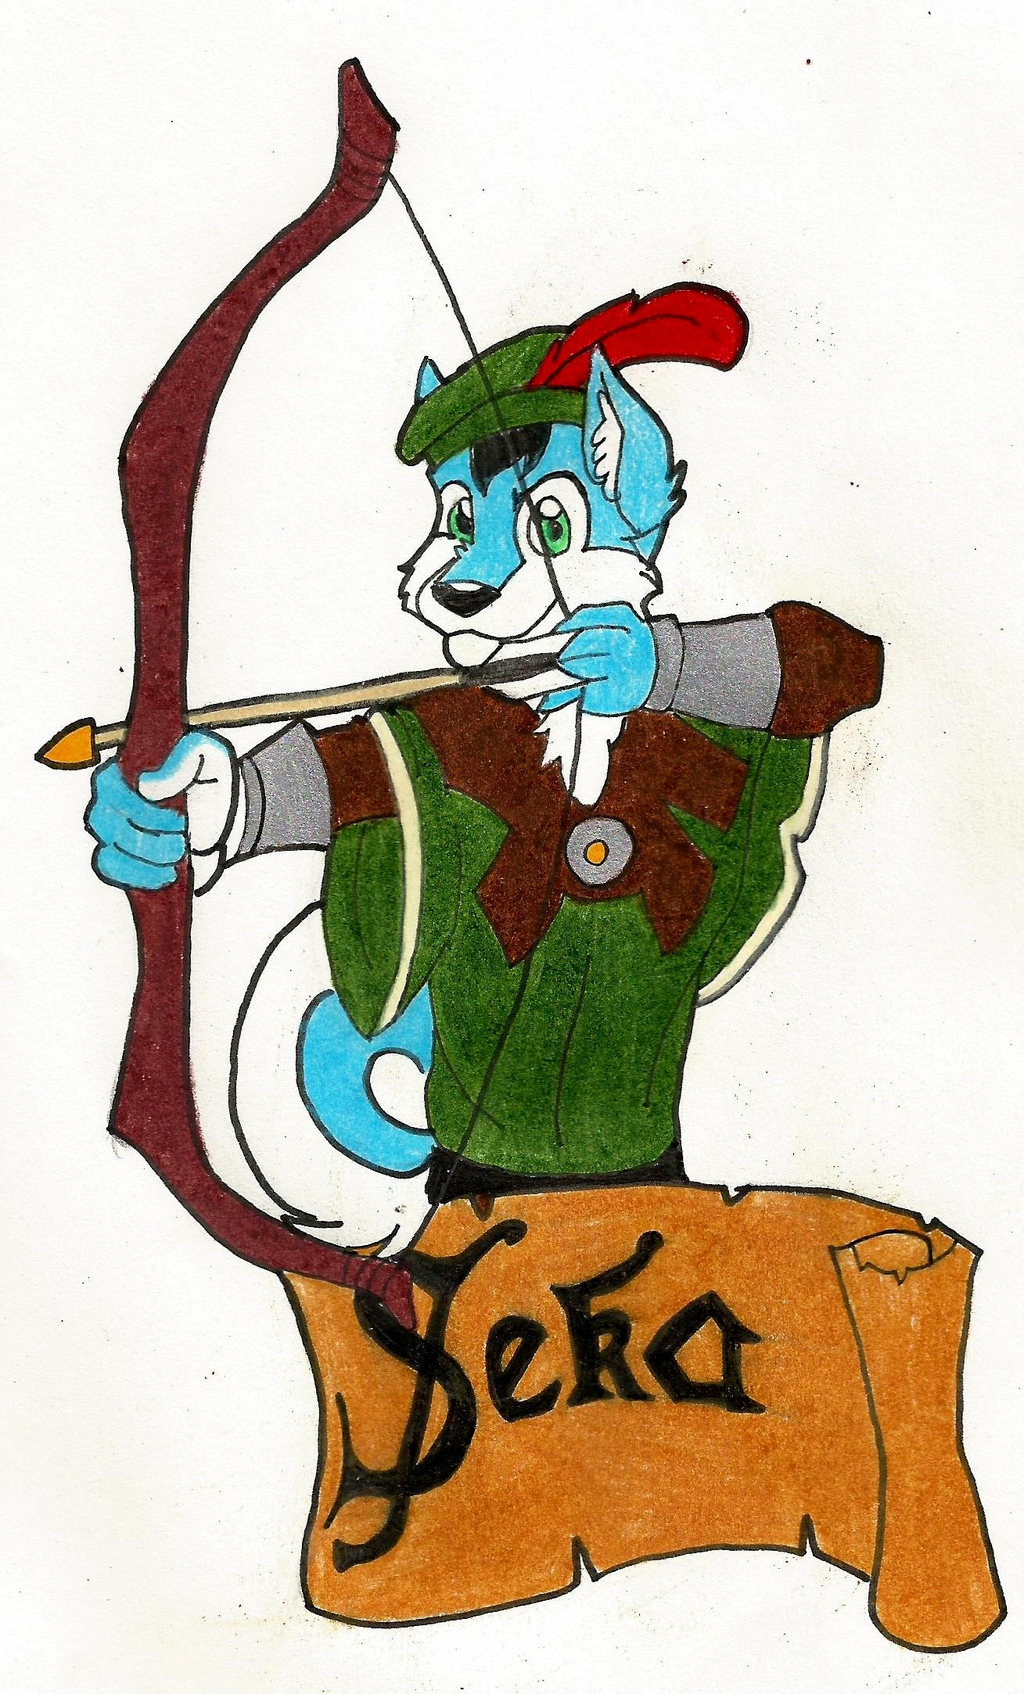 Most recent image: Seka Wild Nights 2014 Con Badge